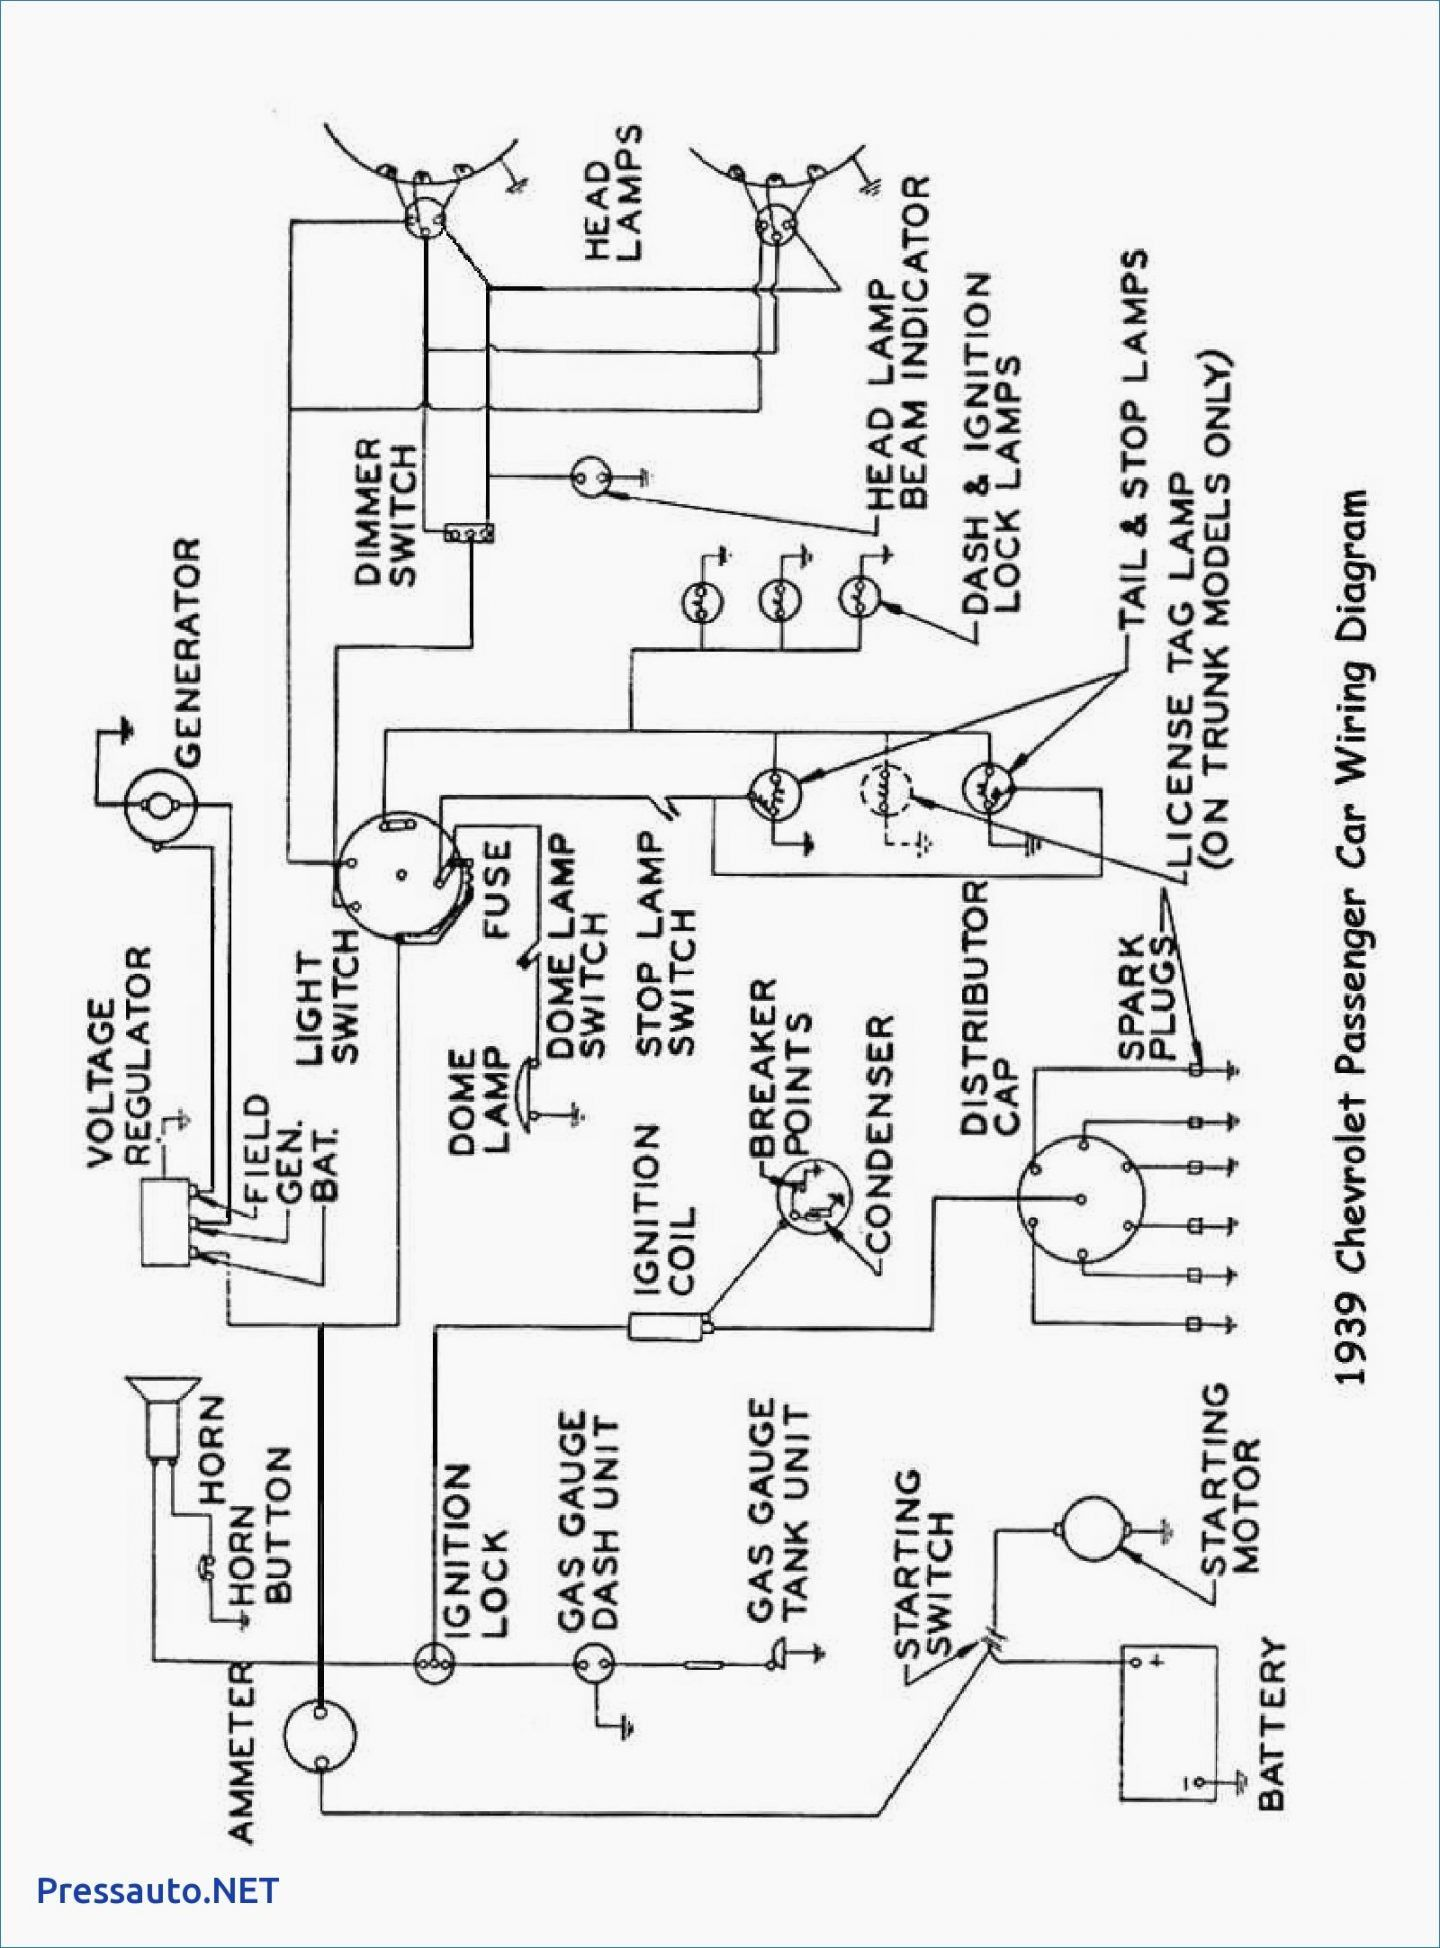 Wiring Diagram Welding Machine Inspirationa Best Of In